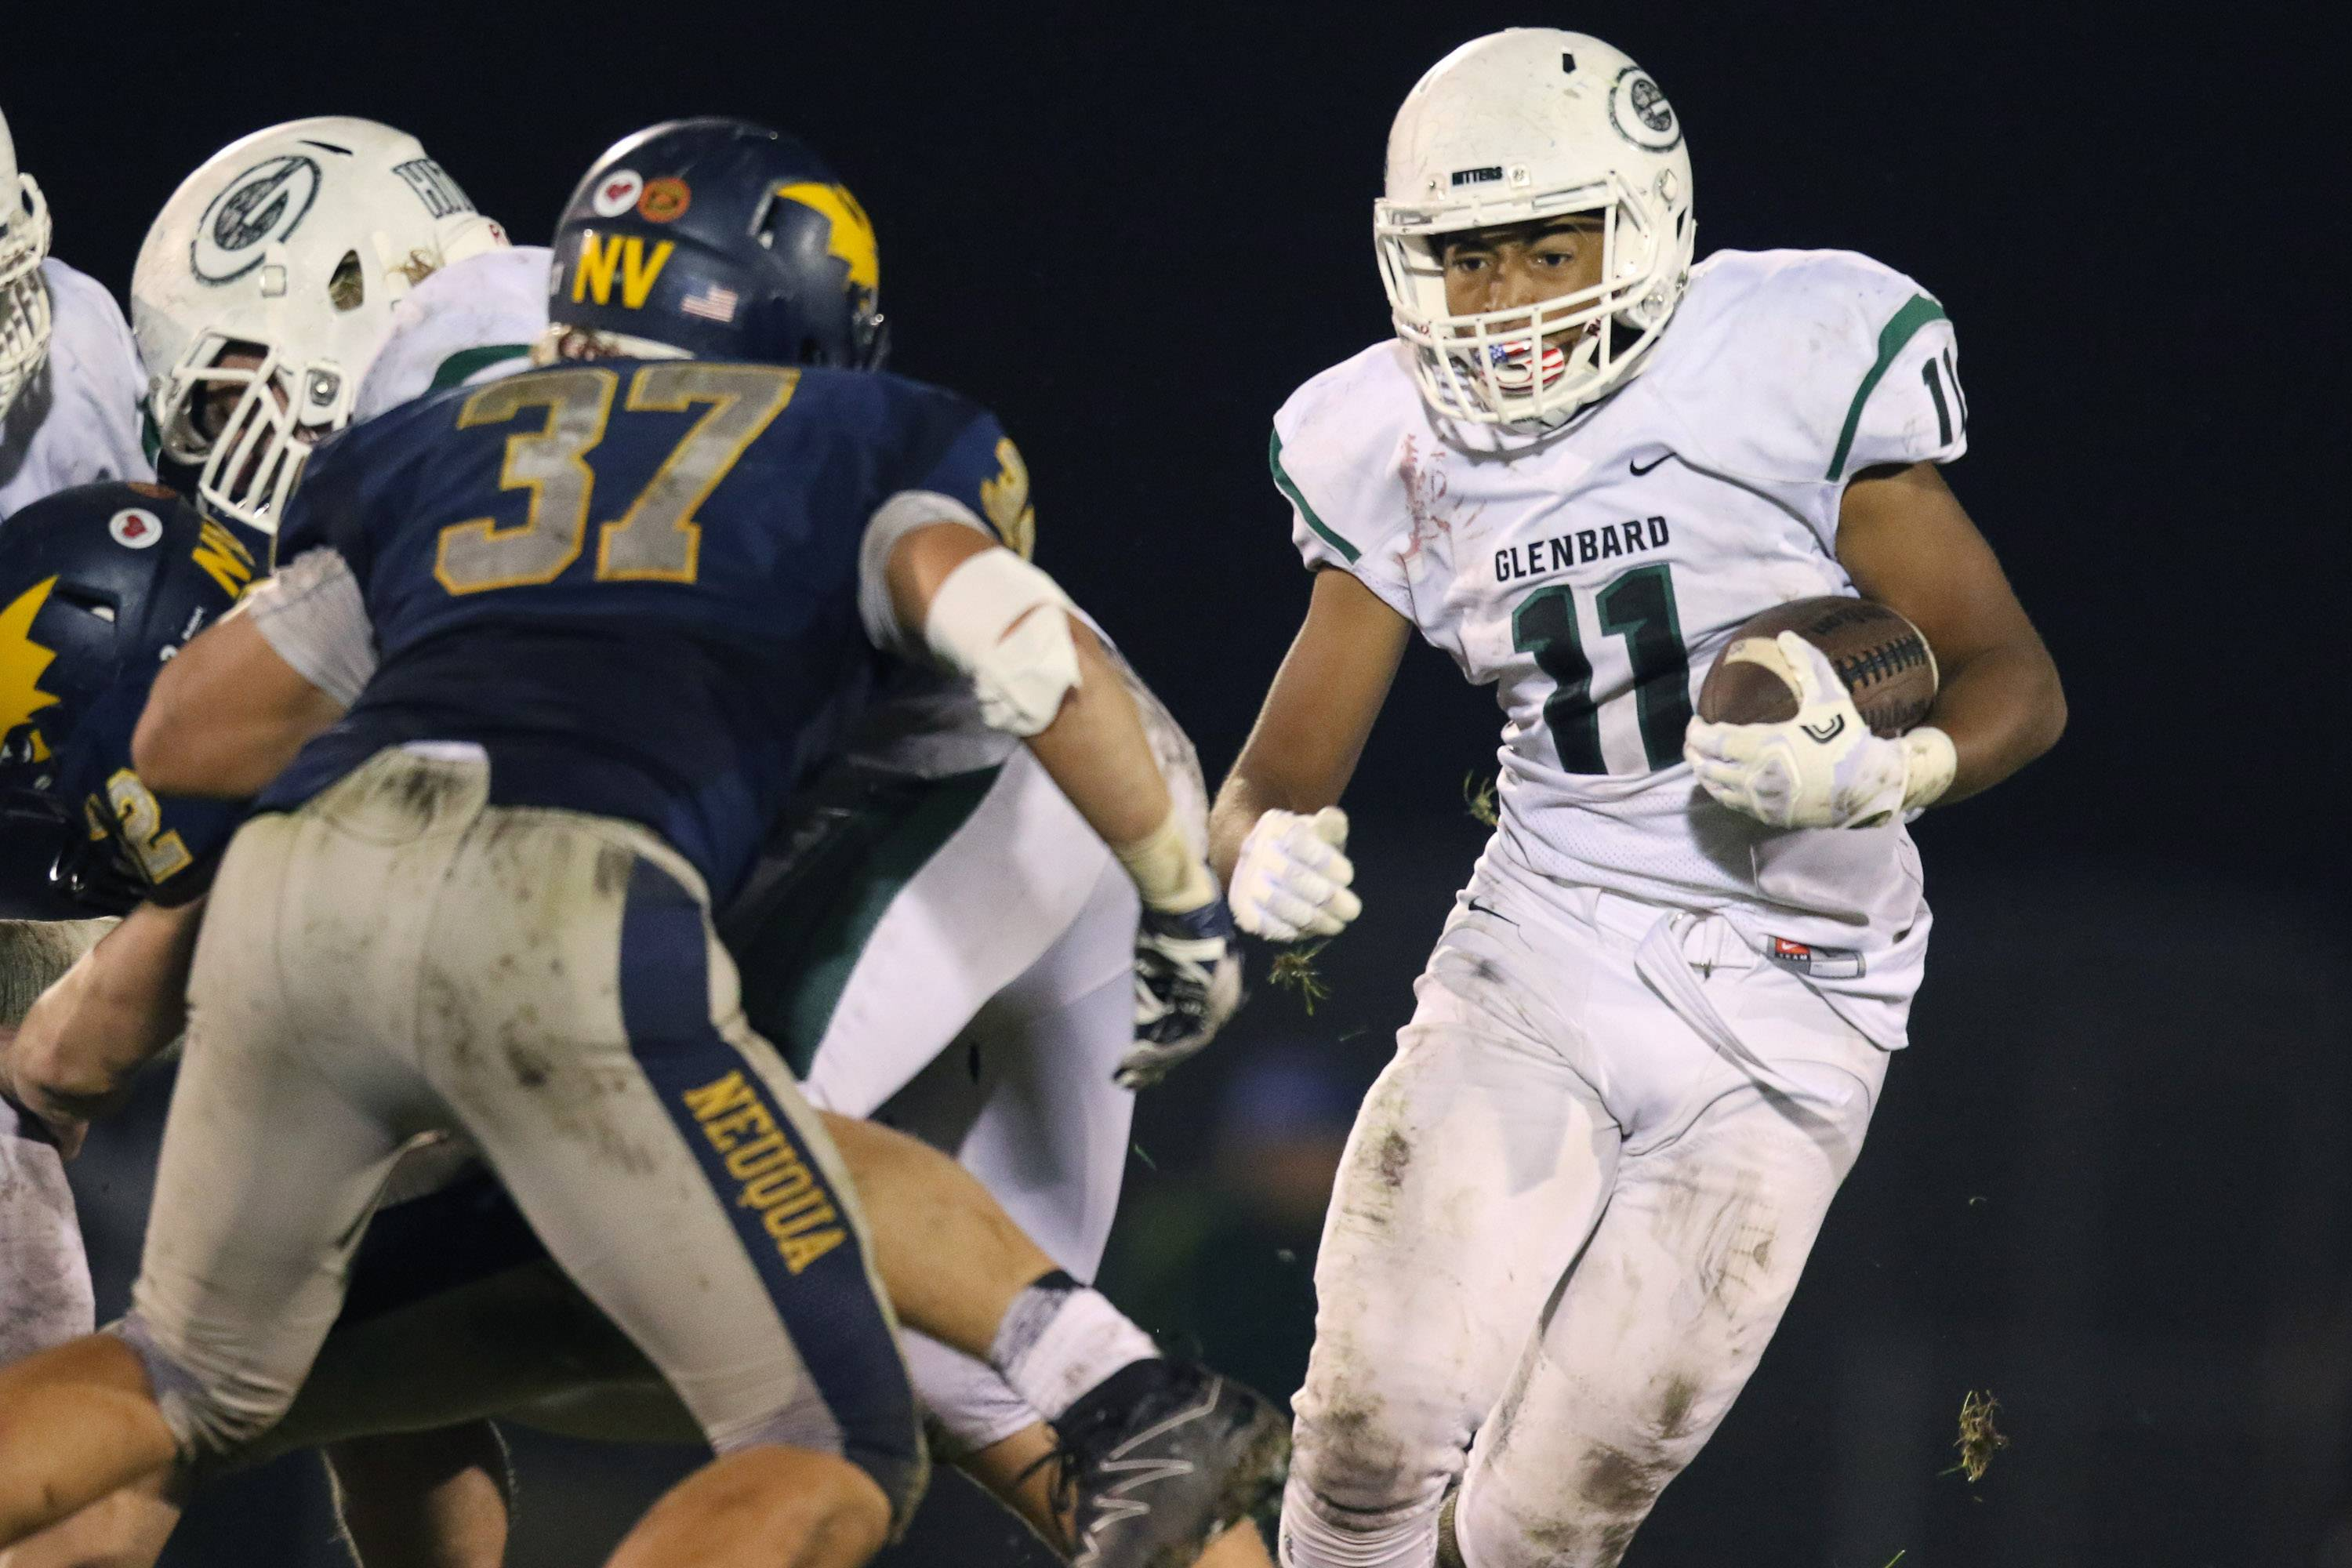 Glenbard West running back Dre Thomas (11) carries the ball against Neuqua Valley at Neuqua Valley High School in Naperville, IL on Saturday, October 29, 2016